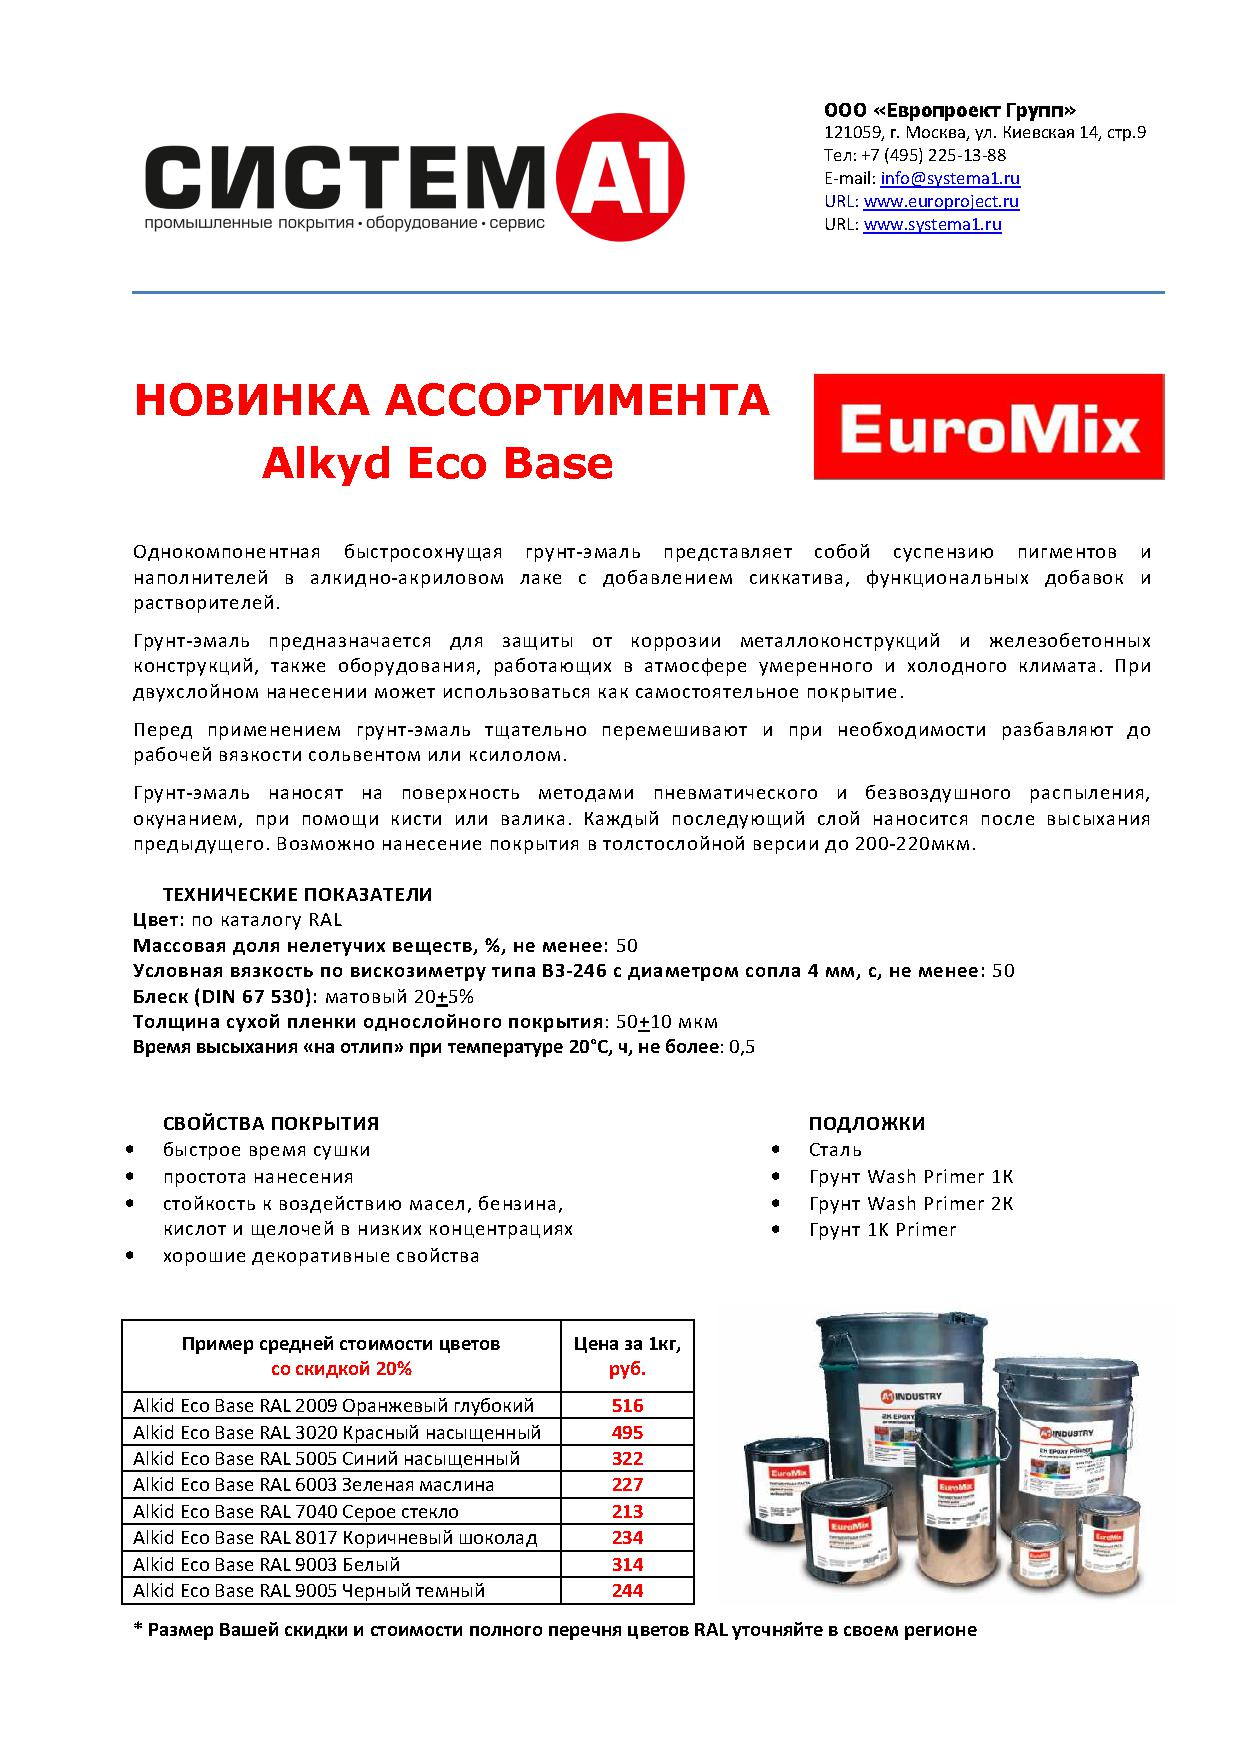 Предложение EuroMix Alkid Eco Base